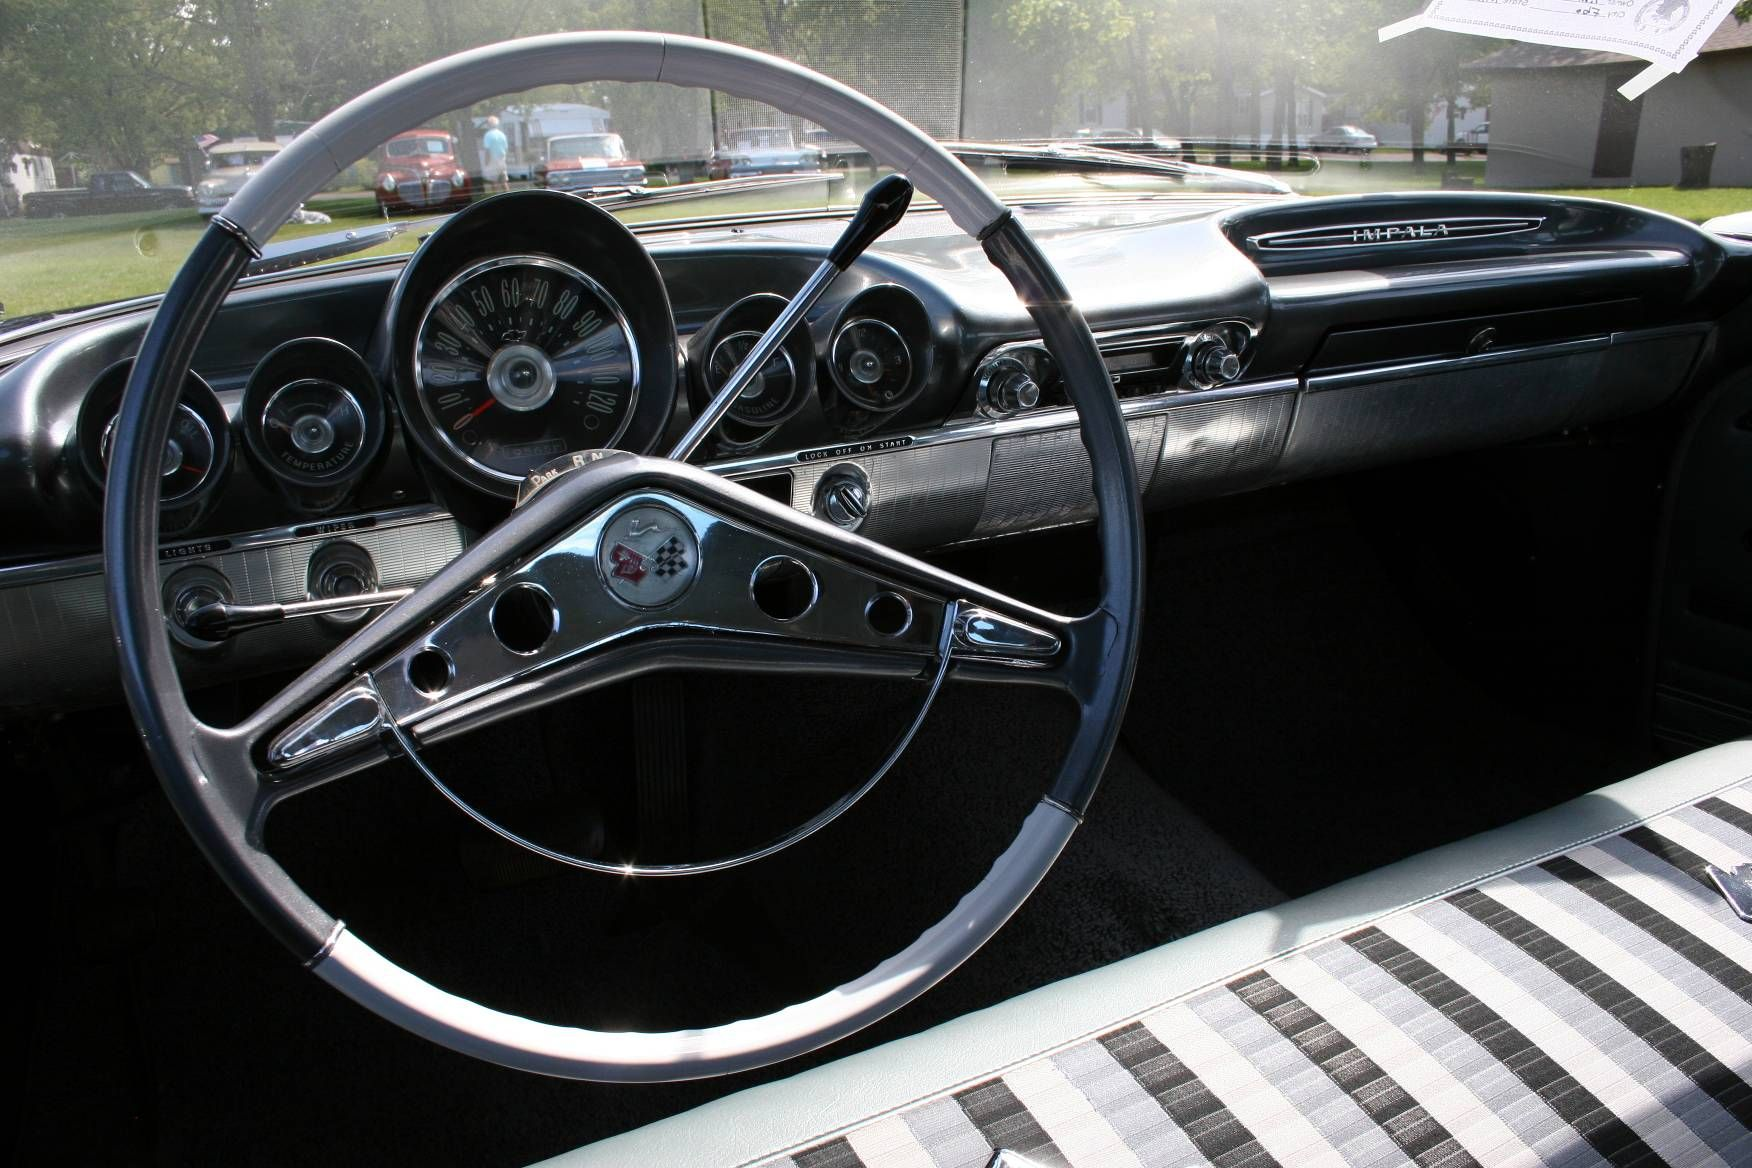 AutoObession to deals in reproduction of the complete steering wheel used on 1959-60 Chevrolet full size models, including Impalas, BelAirs, Biscaynes, and El Caminos